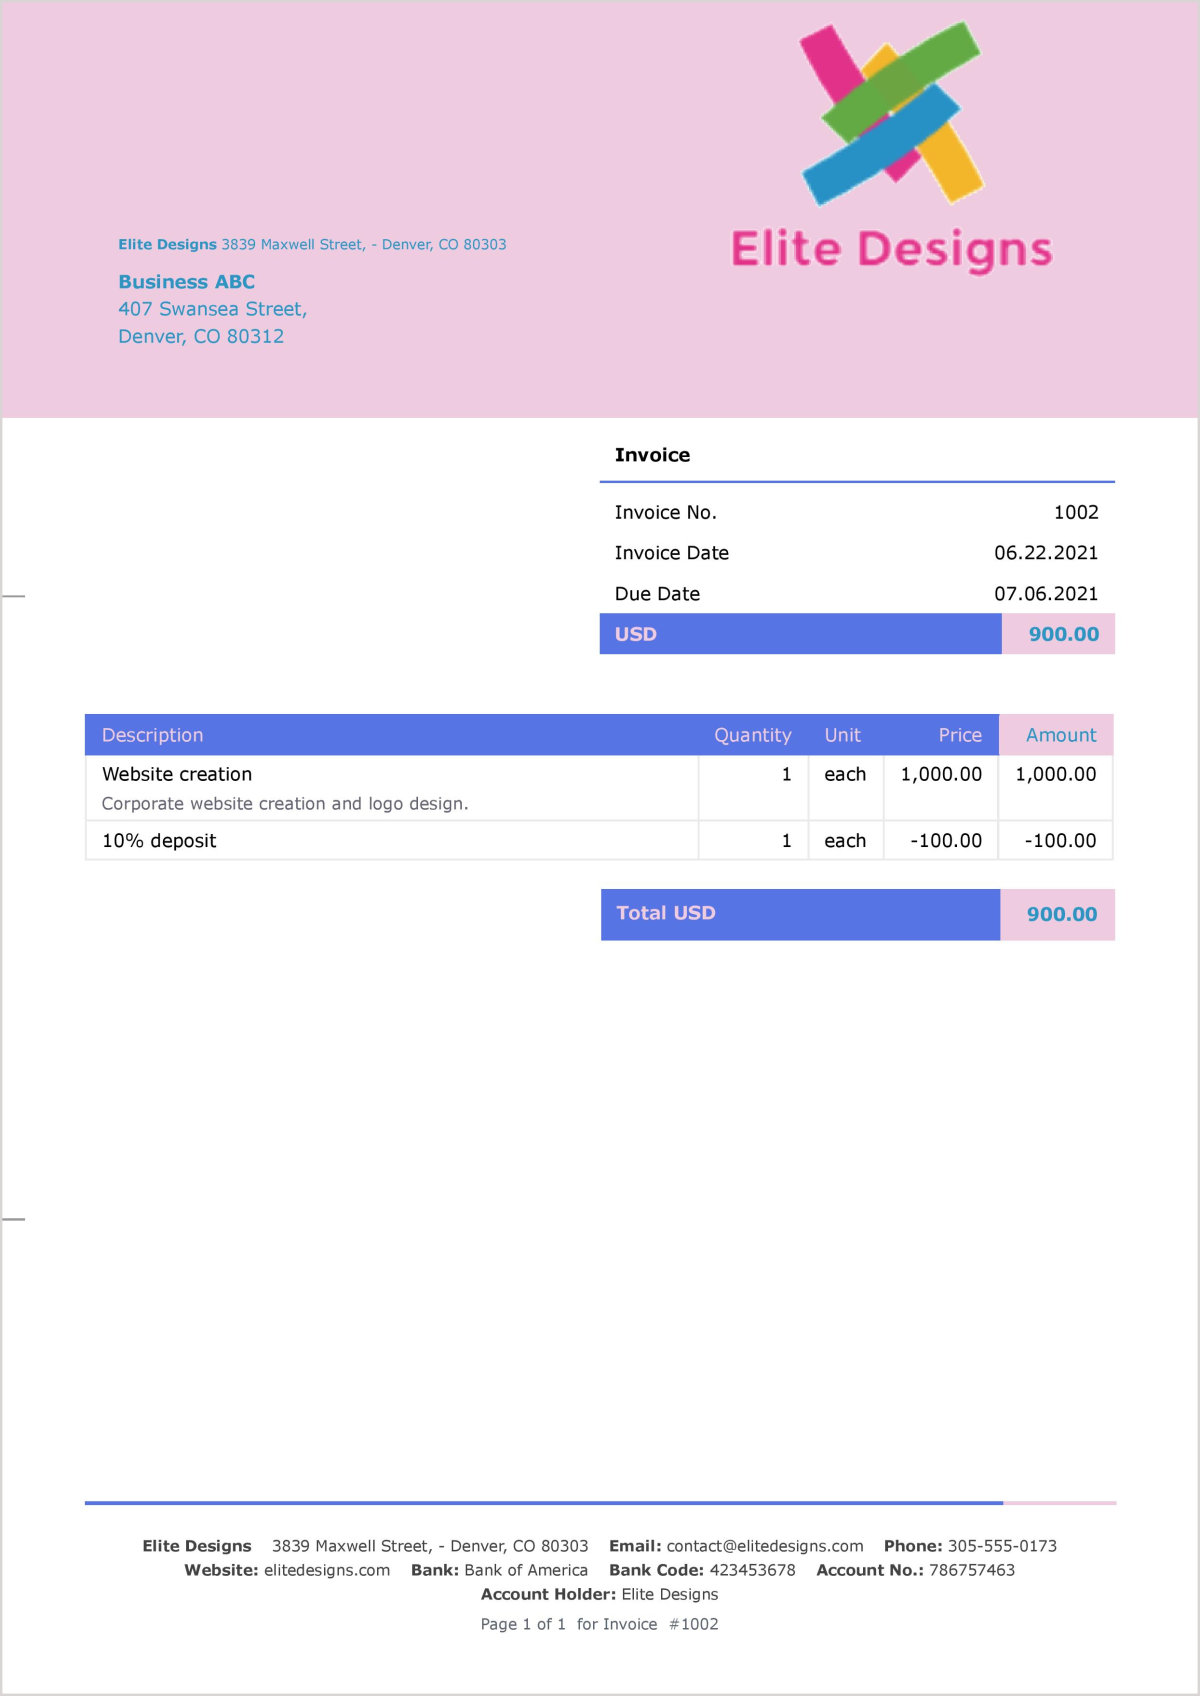 Example of a final invoice including a deposit.